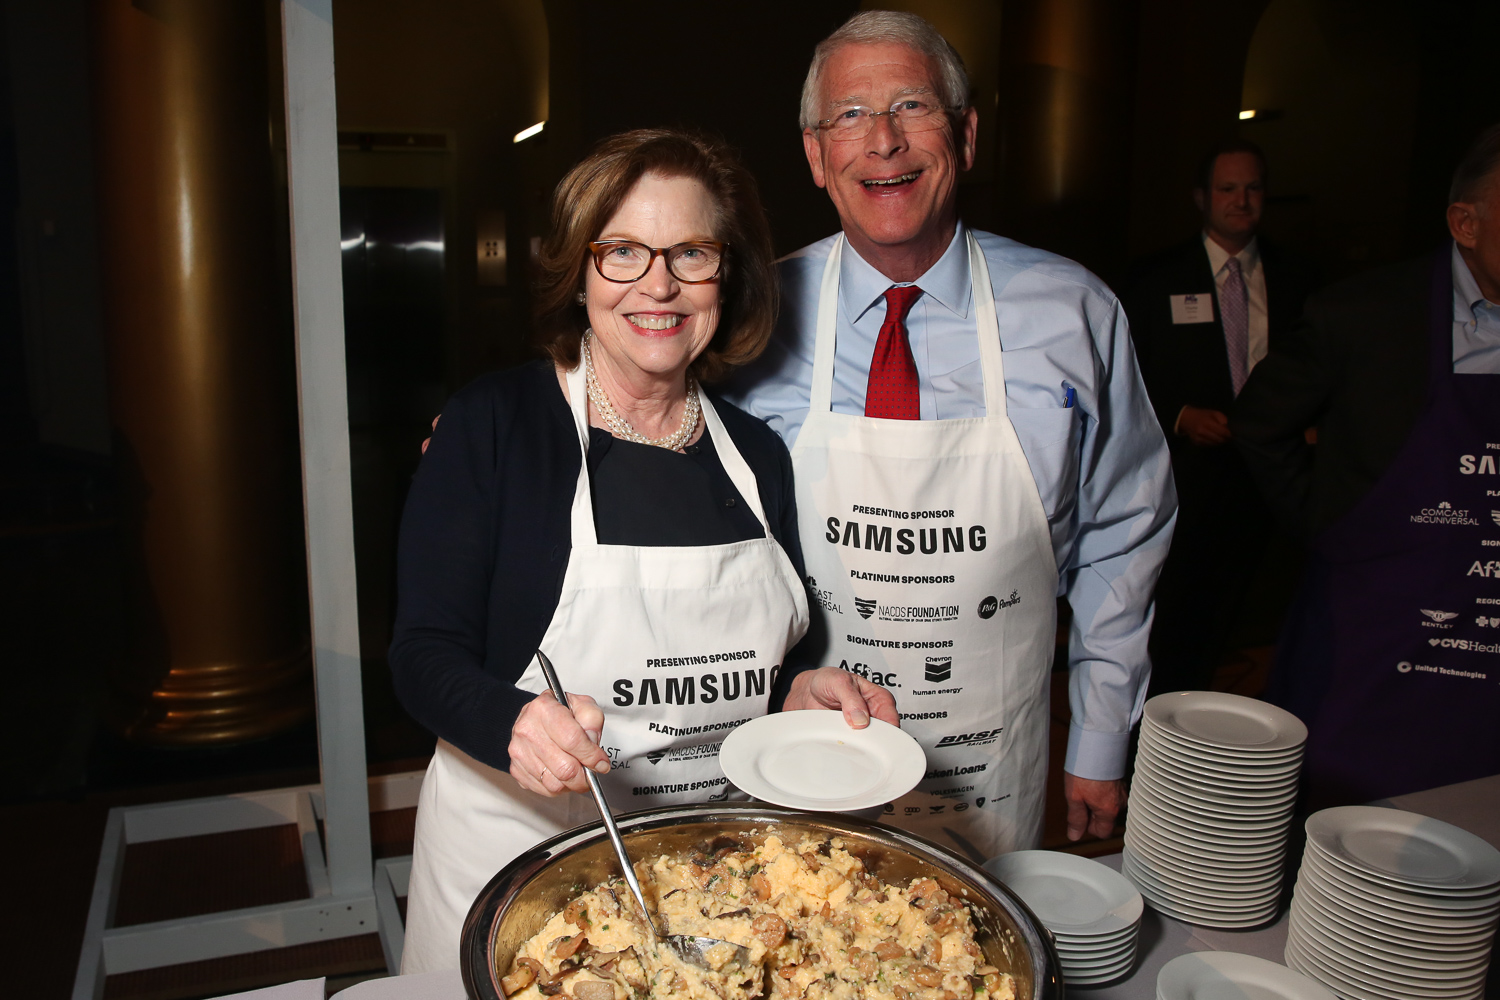 Sen. Roger Wicker and his wife Gayle. (Amanda Andrade-Rhoades/DC Refined)